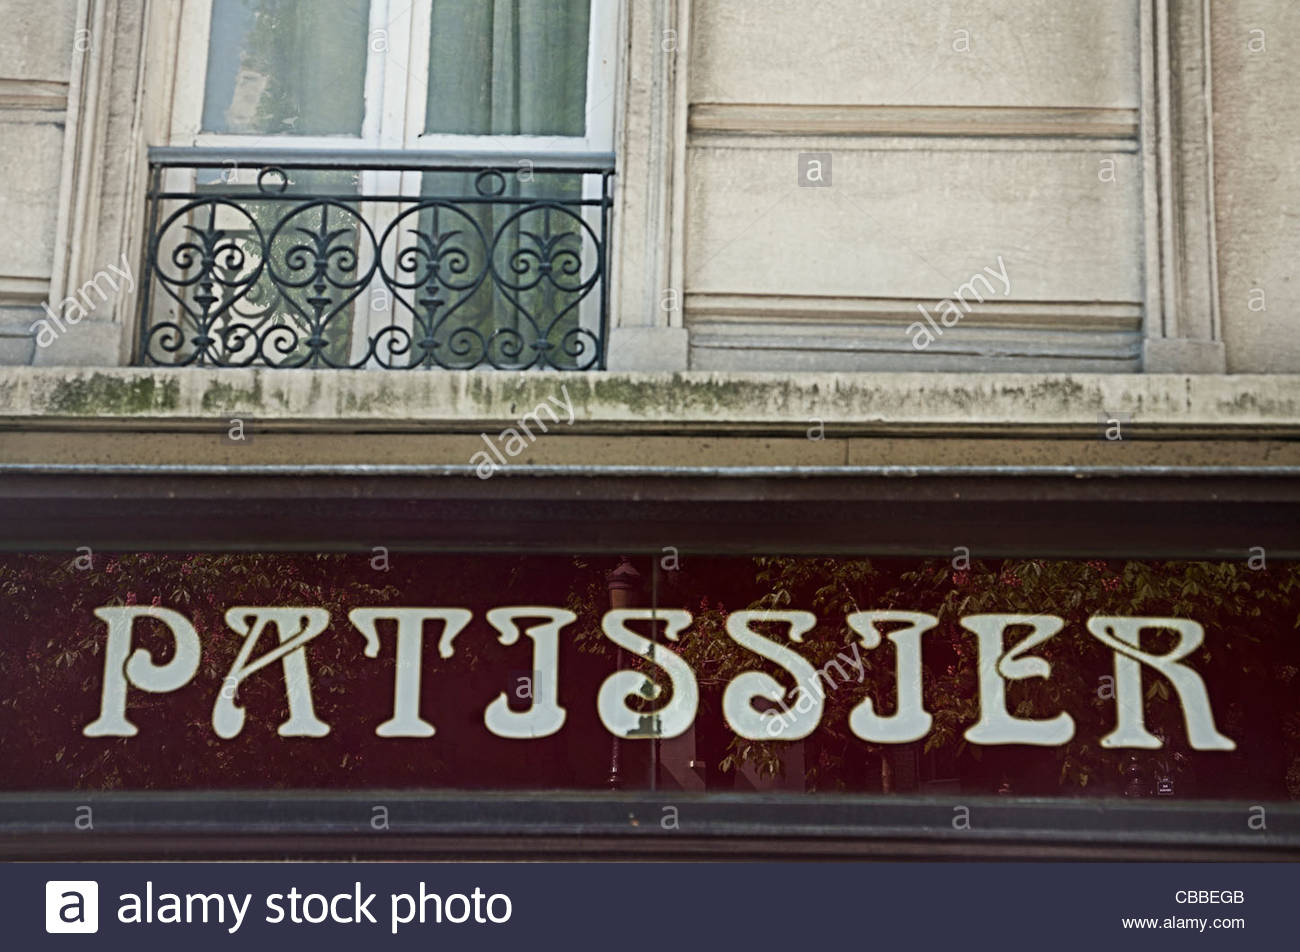 Patissier sign on French street Stock Photo